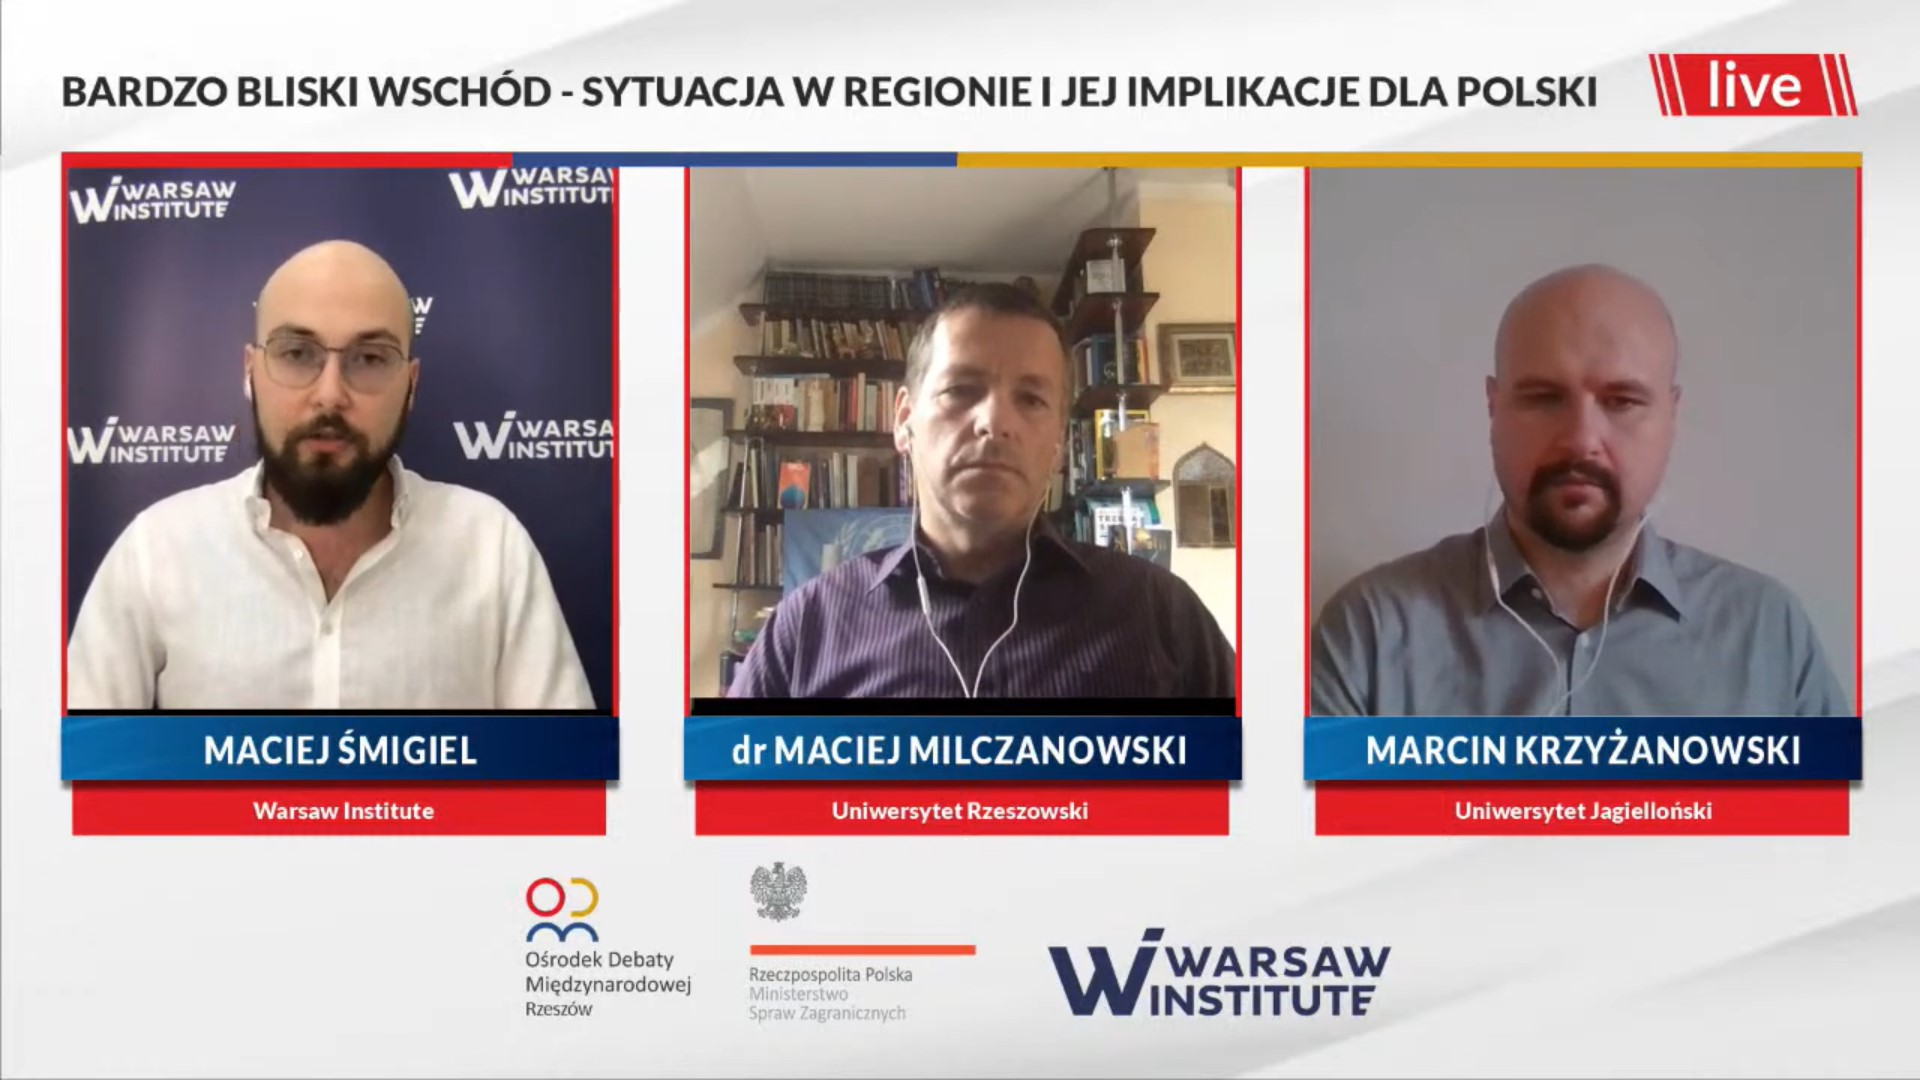 Summary: The More-than-a-Middle East – the situation in the region and its implications for Poland